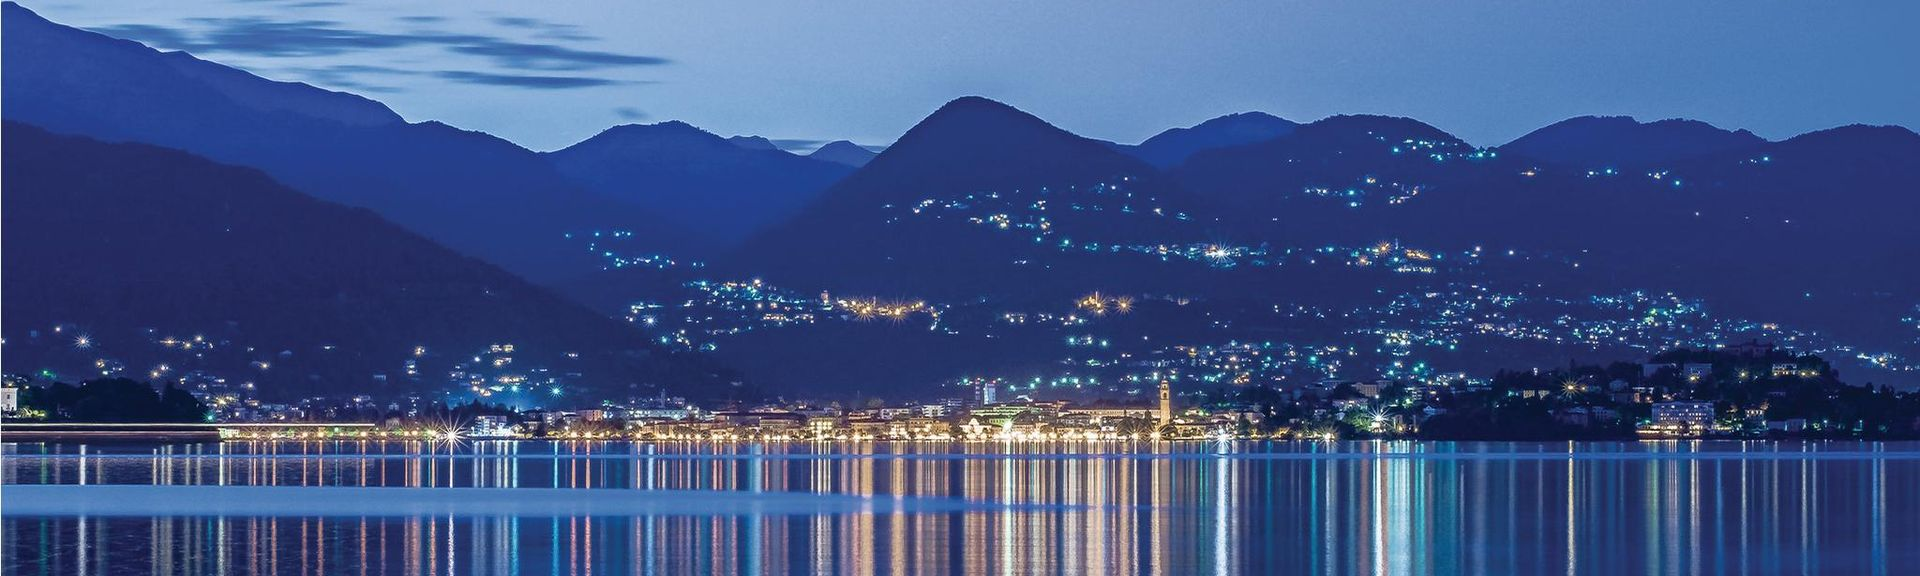 Tronzano Lago Maggiore It Holiday Lettings Houses More Homeaway